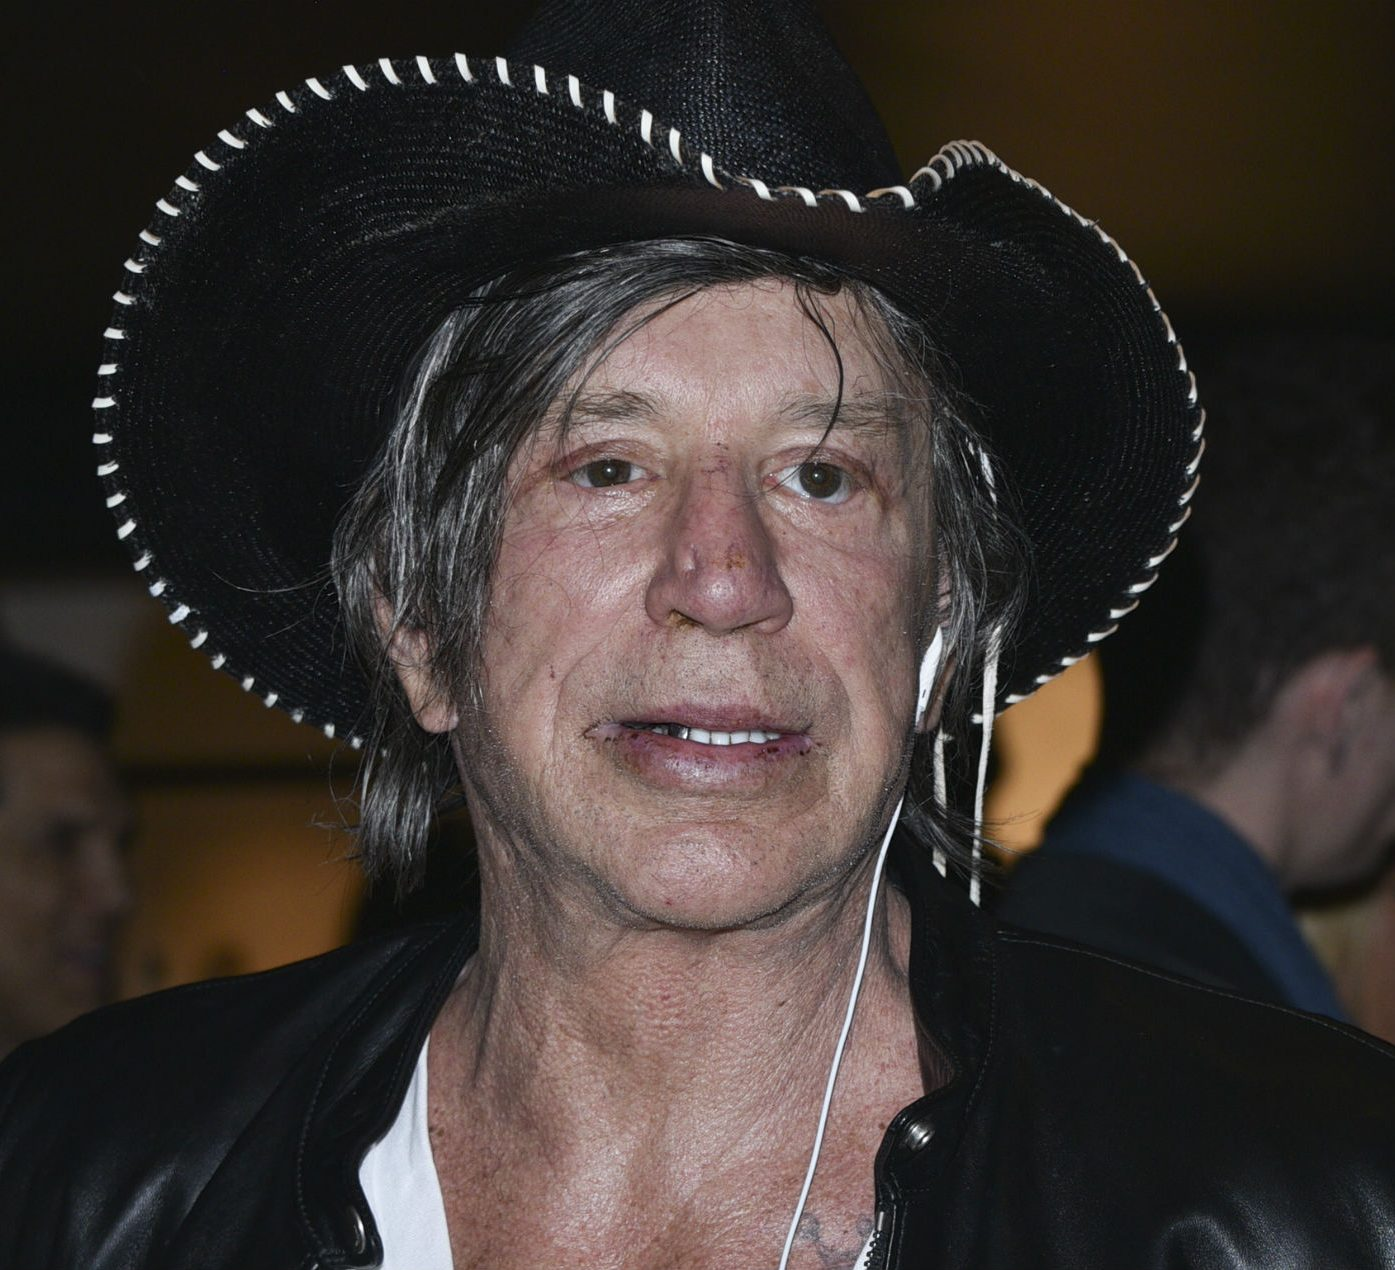 33 3 e1600686580439 20 Things You Never Knew About Mickey Rourke